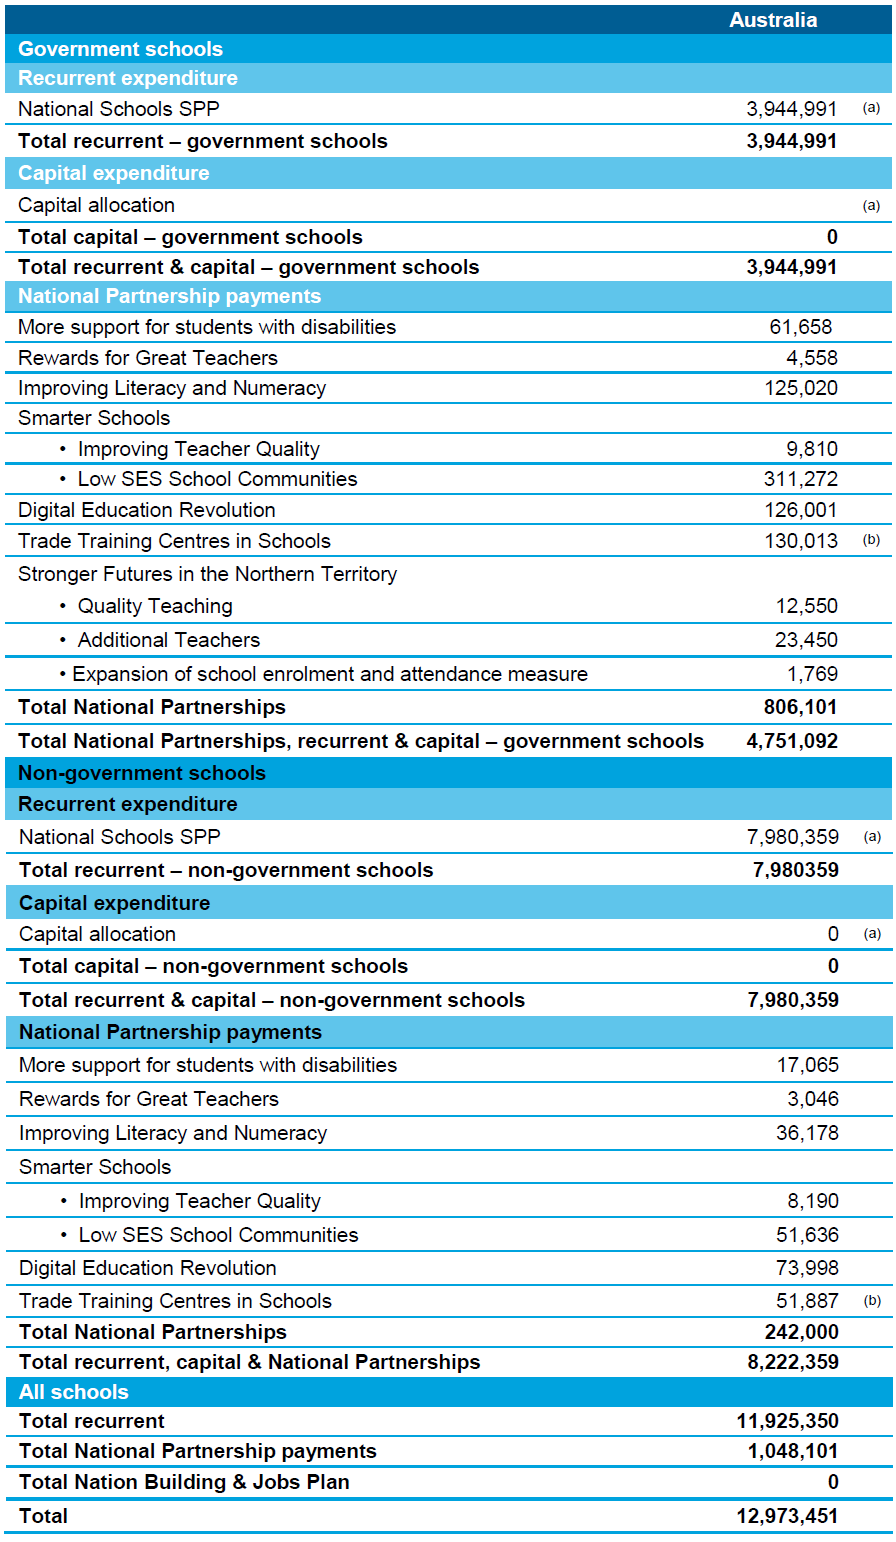 Table 8.2 Australian Government specific purpose payments for schools by government/non- government, recurrent/capital, Australia, 2012–13 financial year (accrual basis) ($'000)